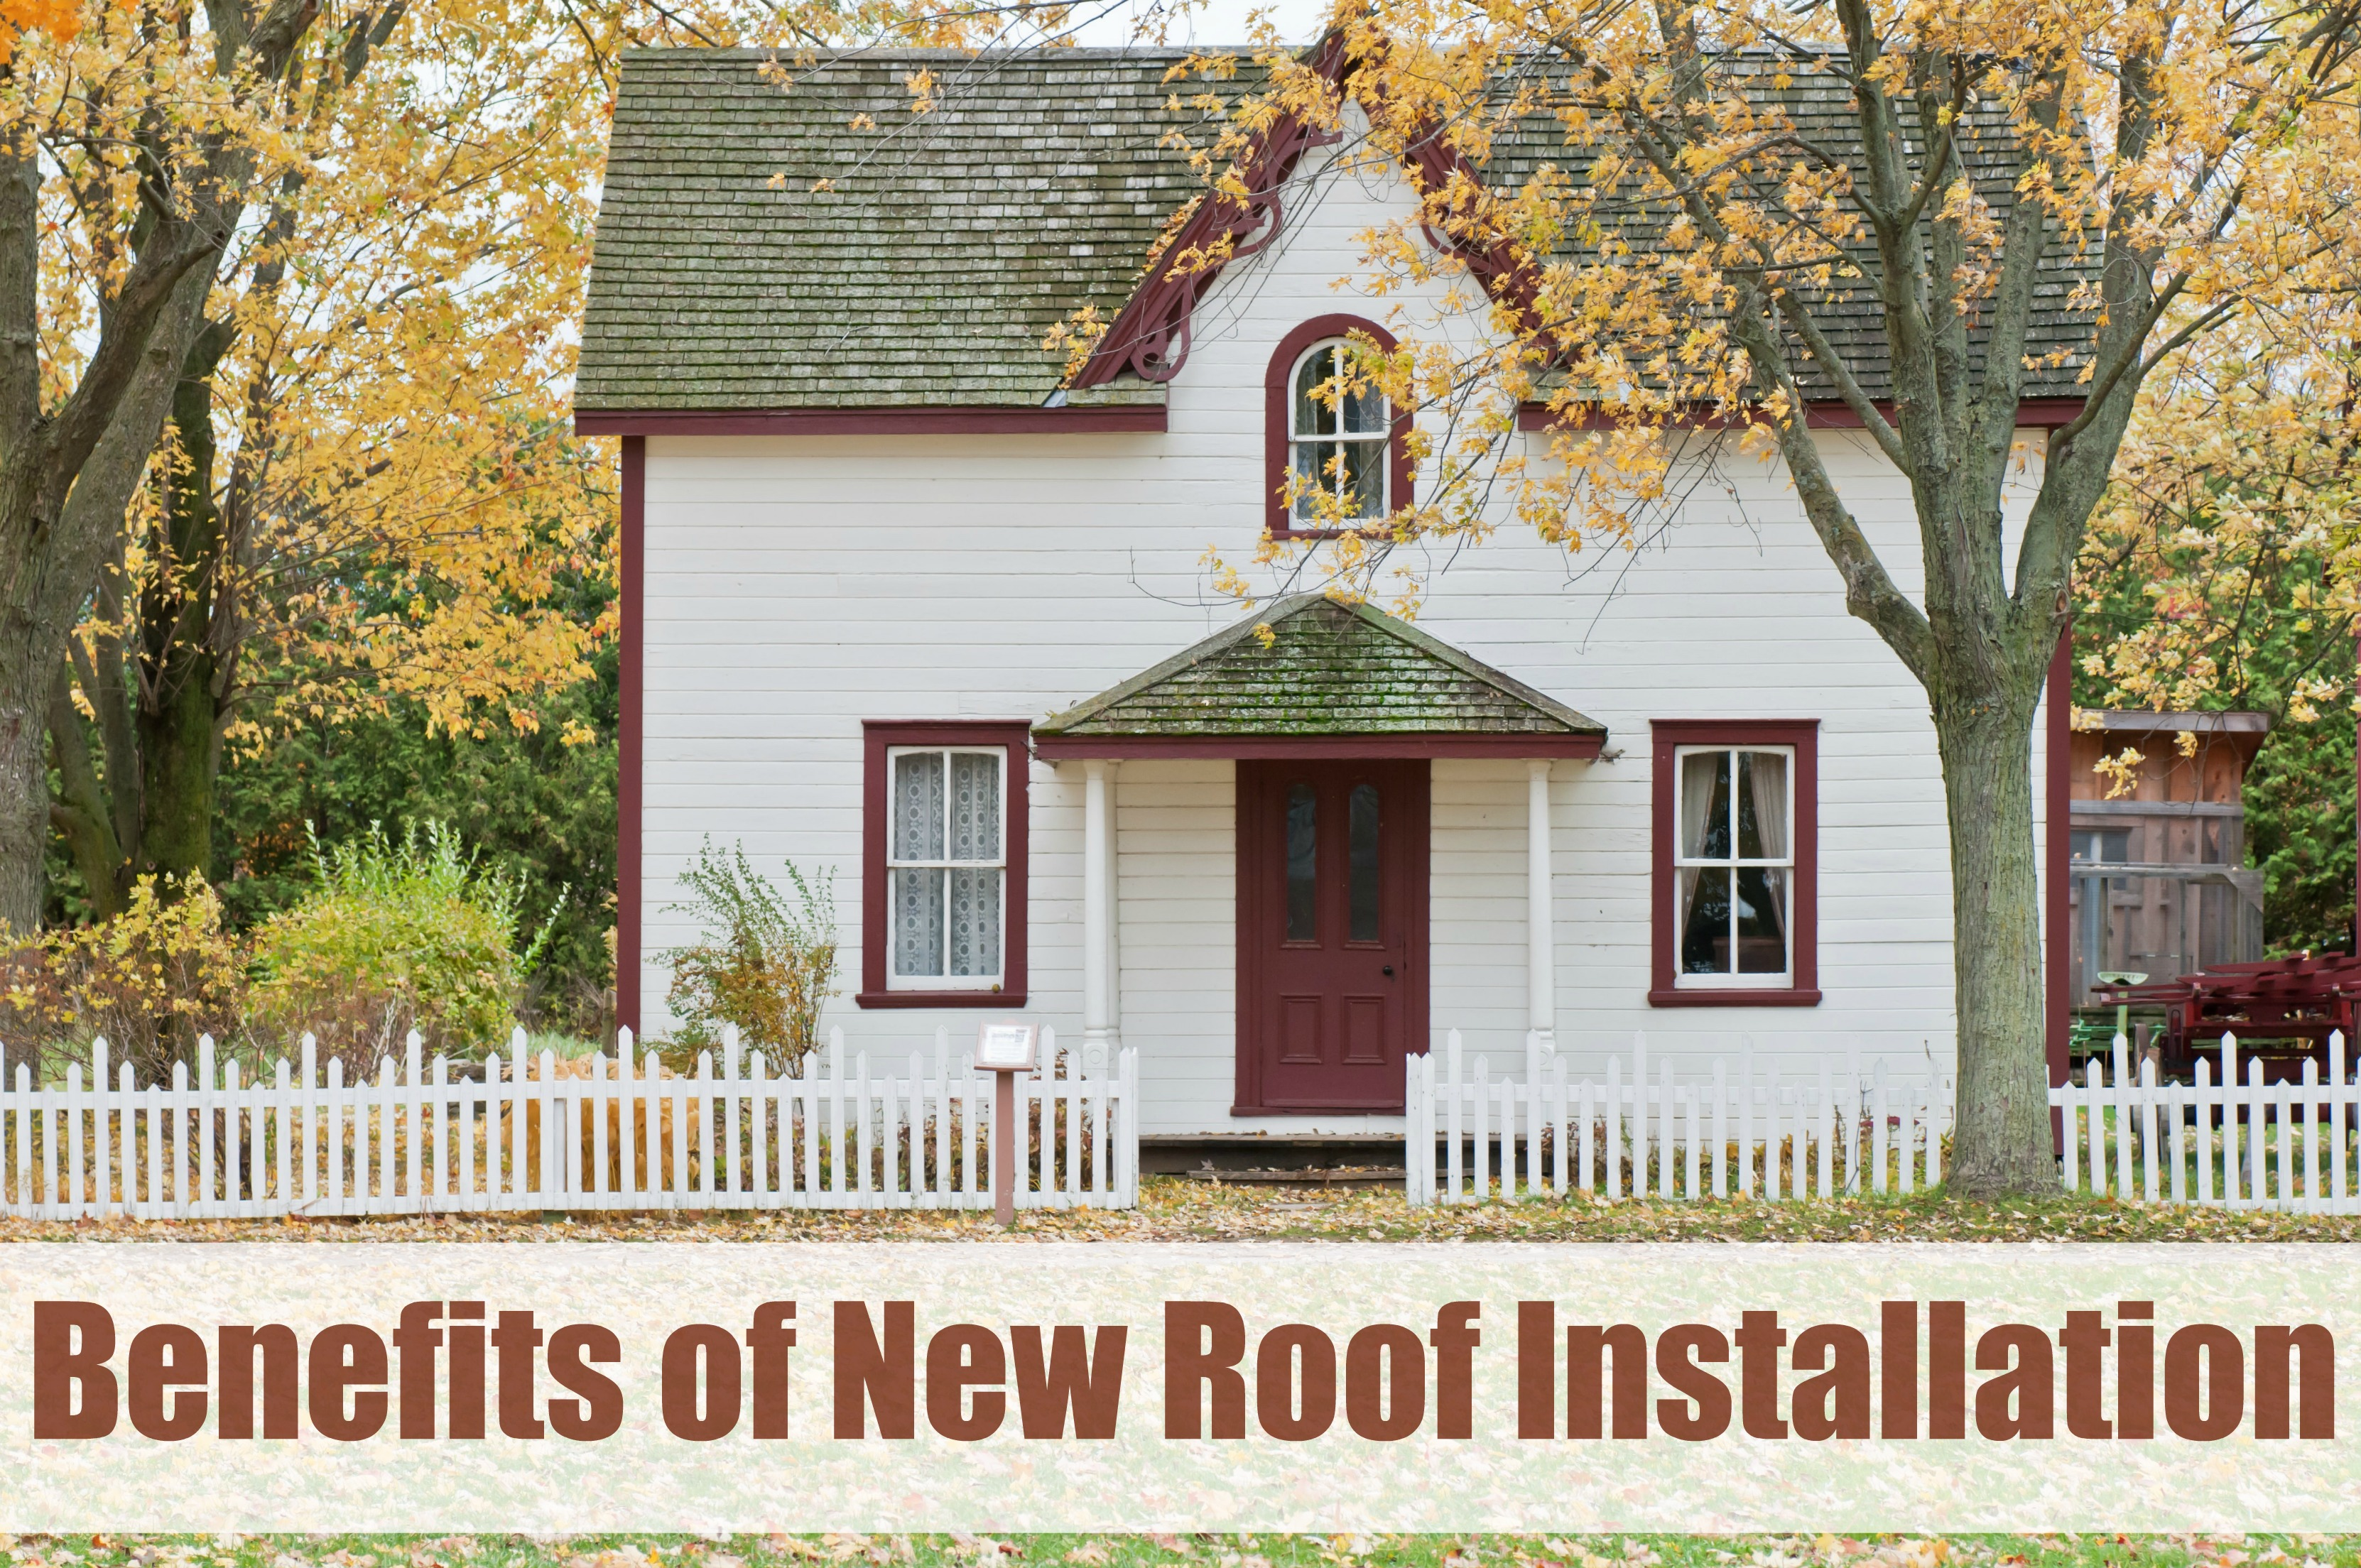 New Roof Installation : Benefits of new roof installation ⋆ the stuff success